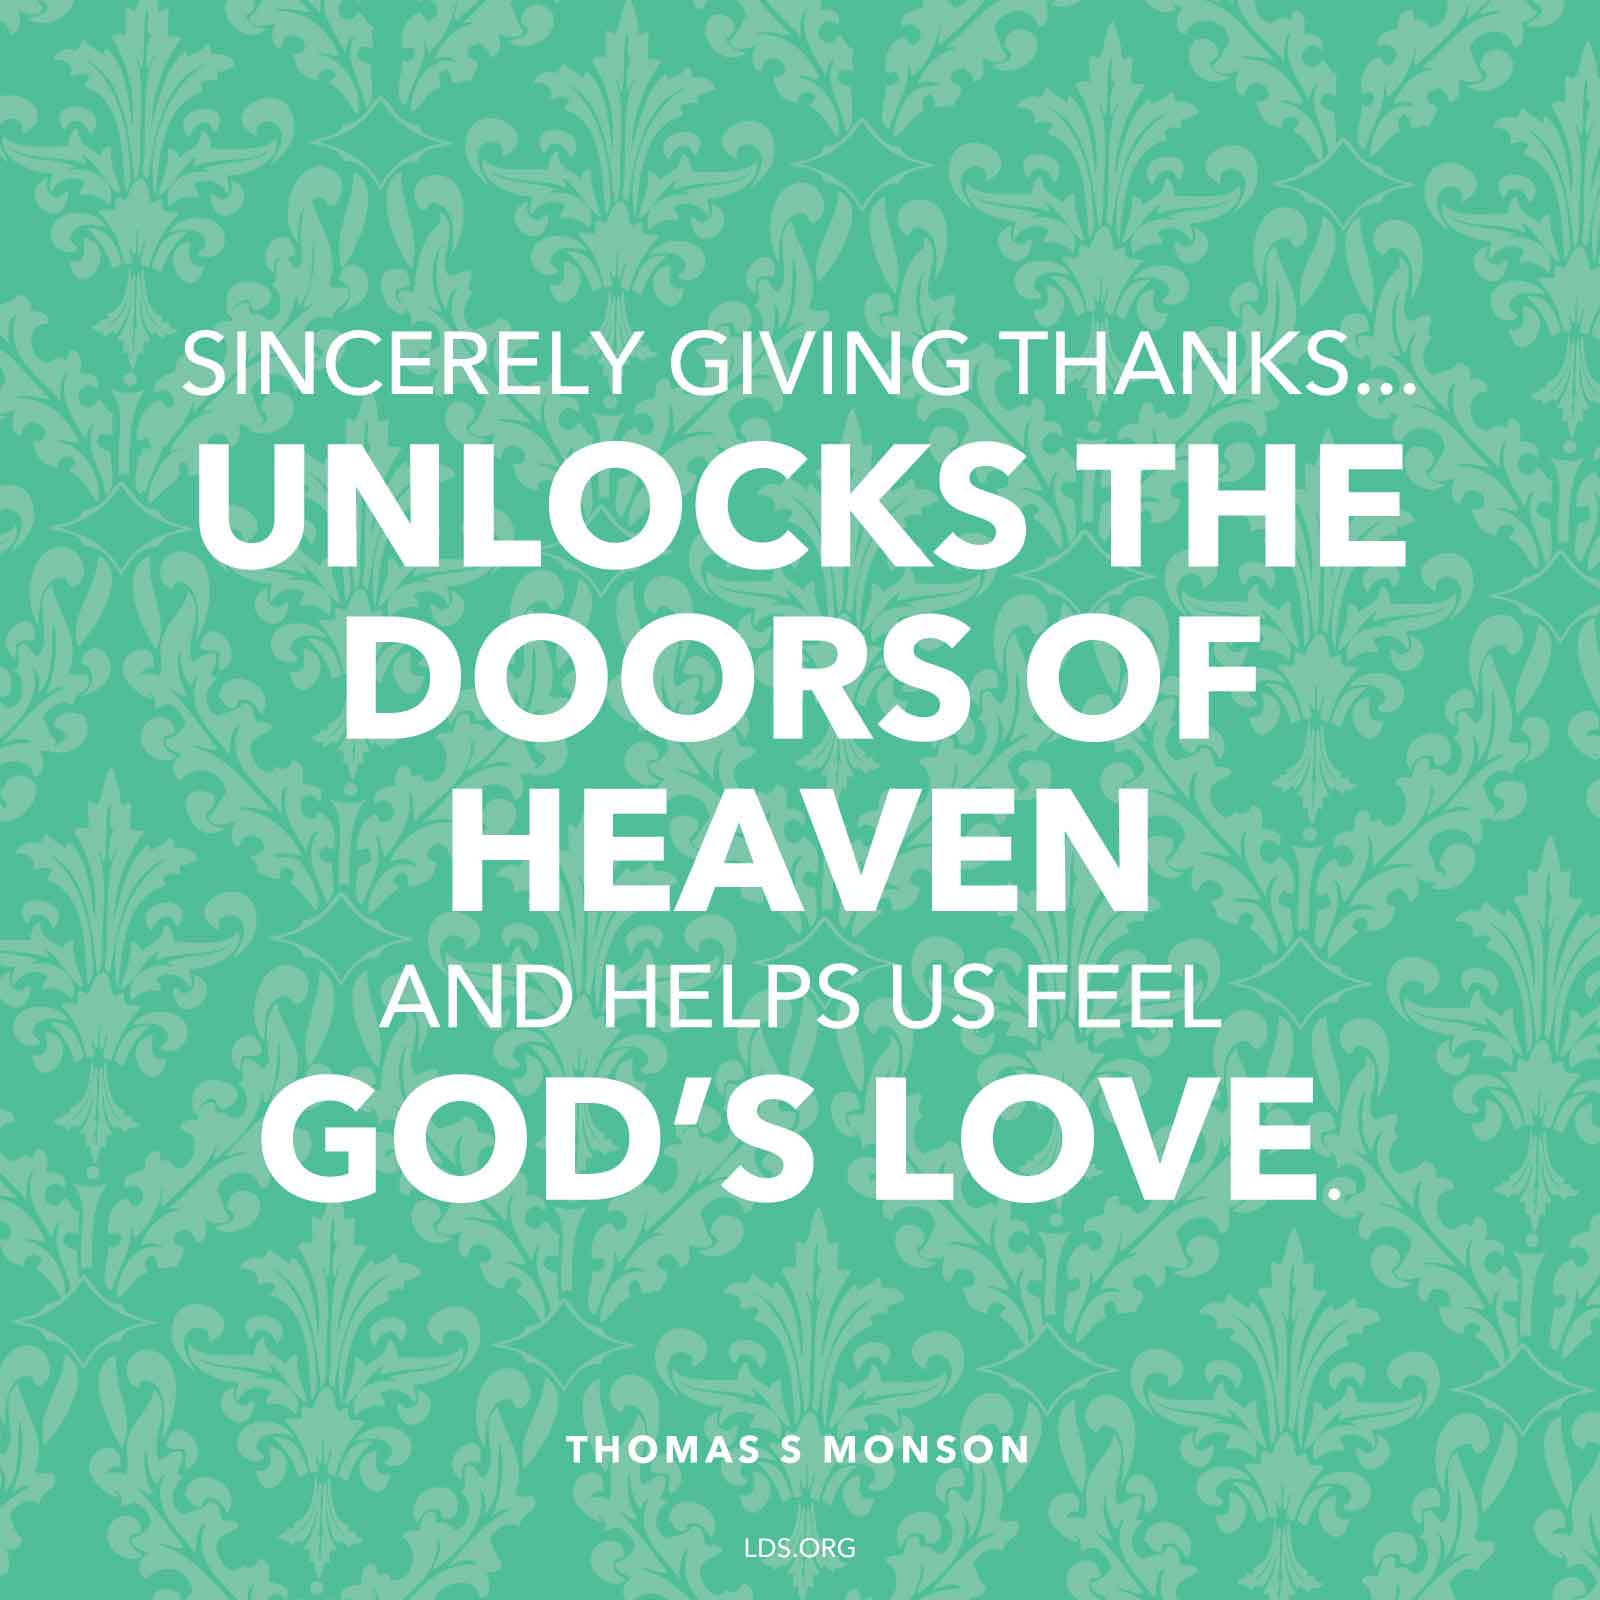 Mormon Quotes Home  Thomas Monson